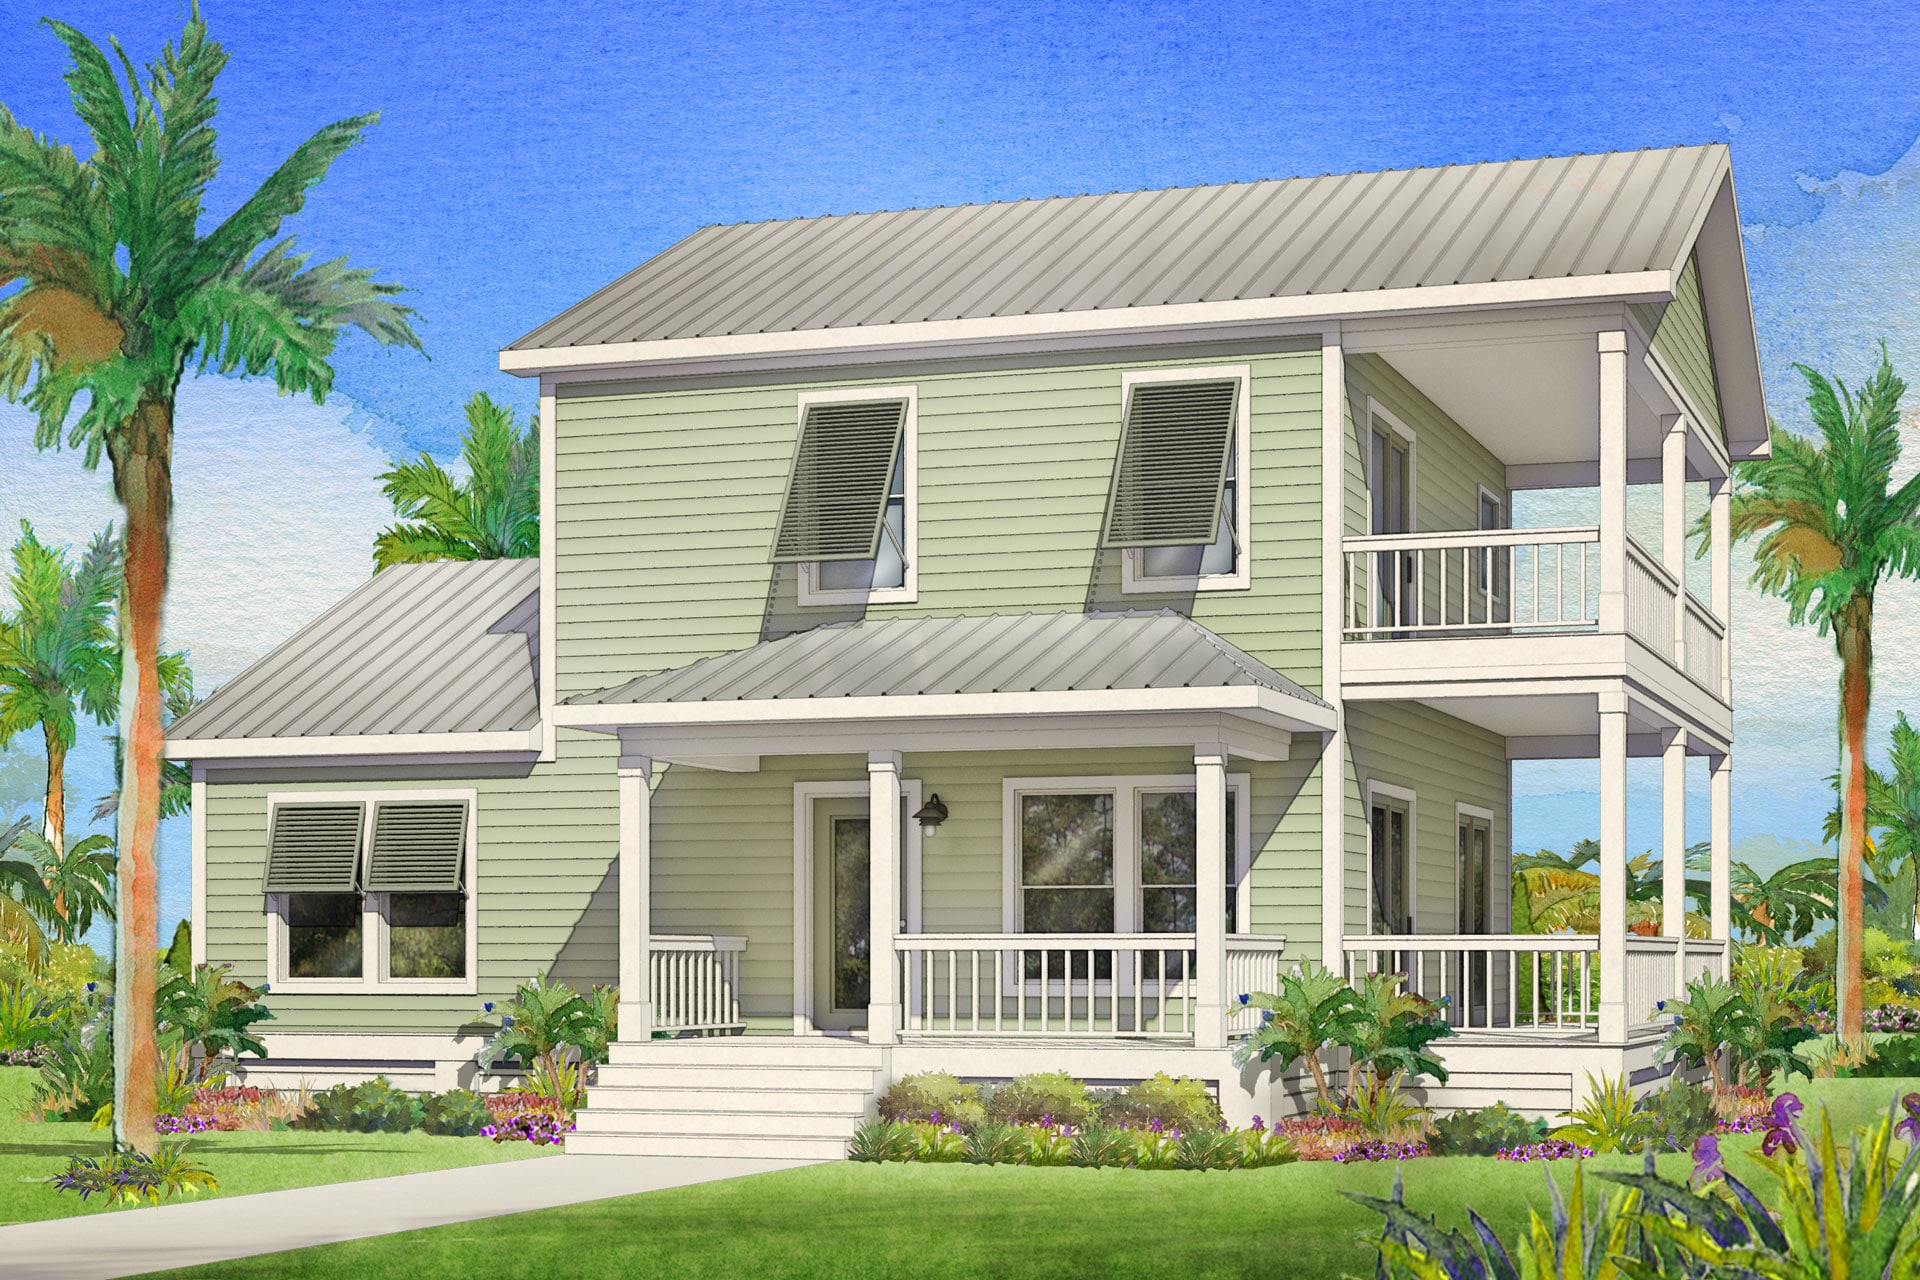 kingfisher modular home rendering